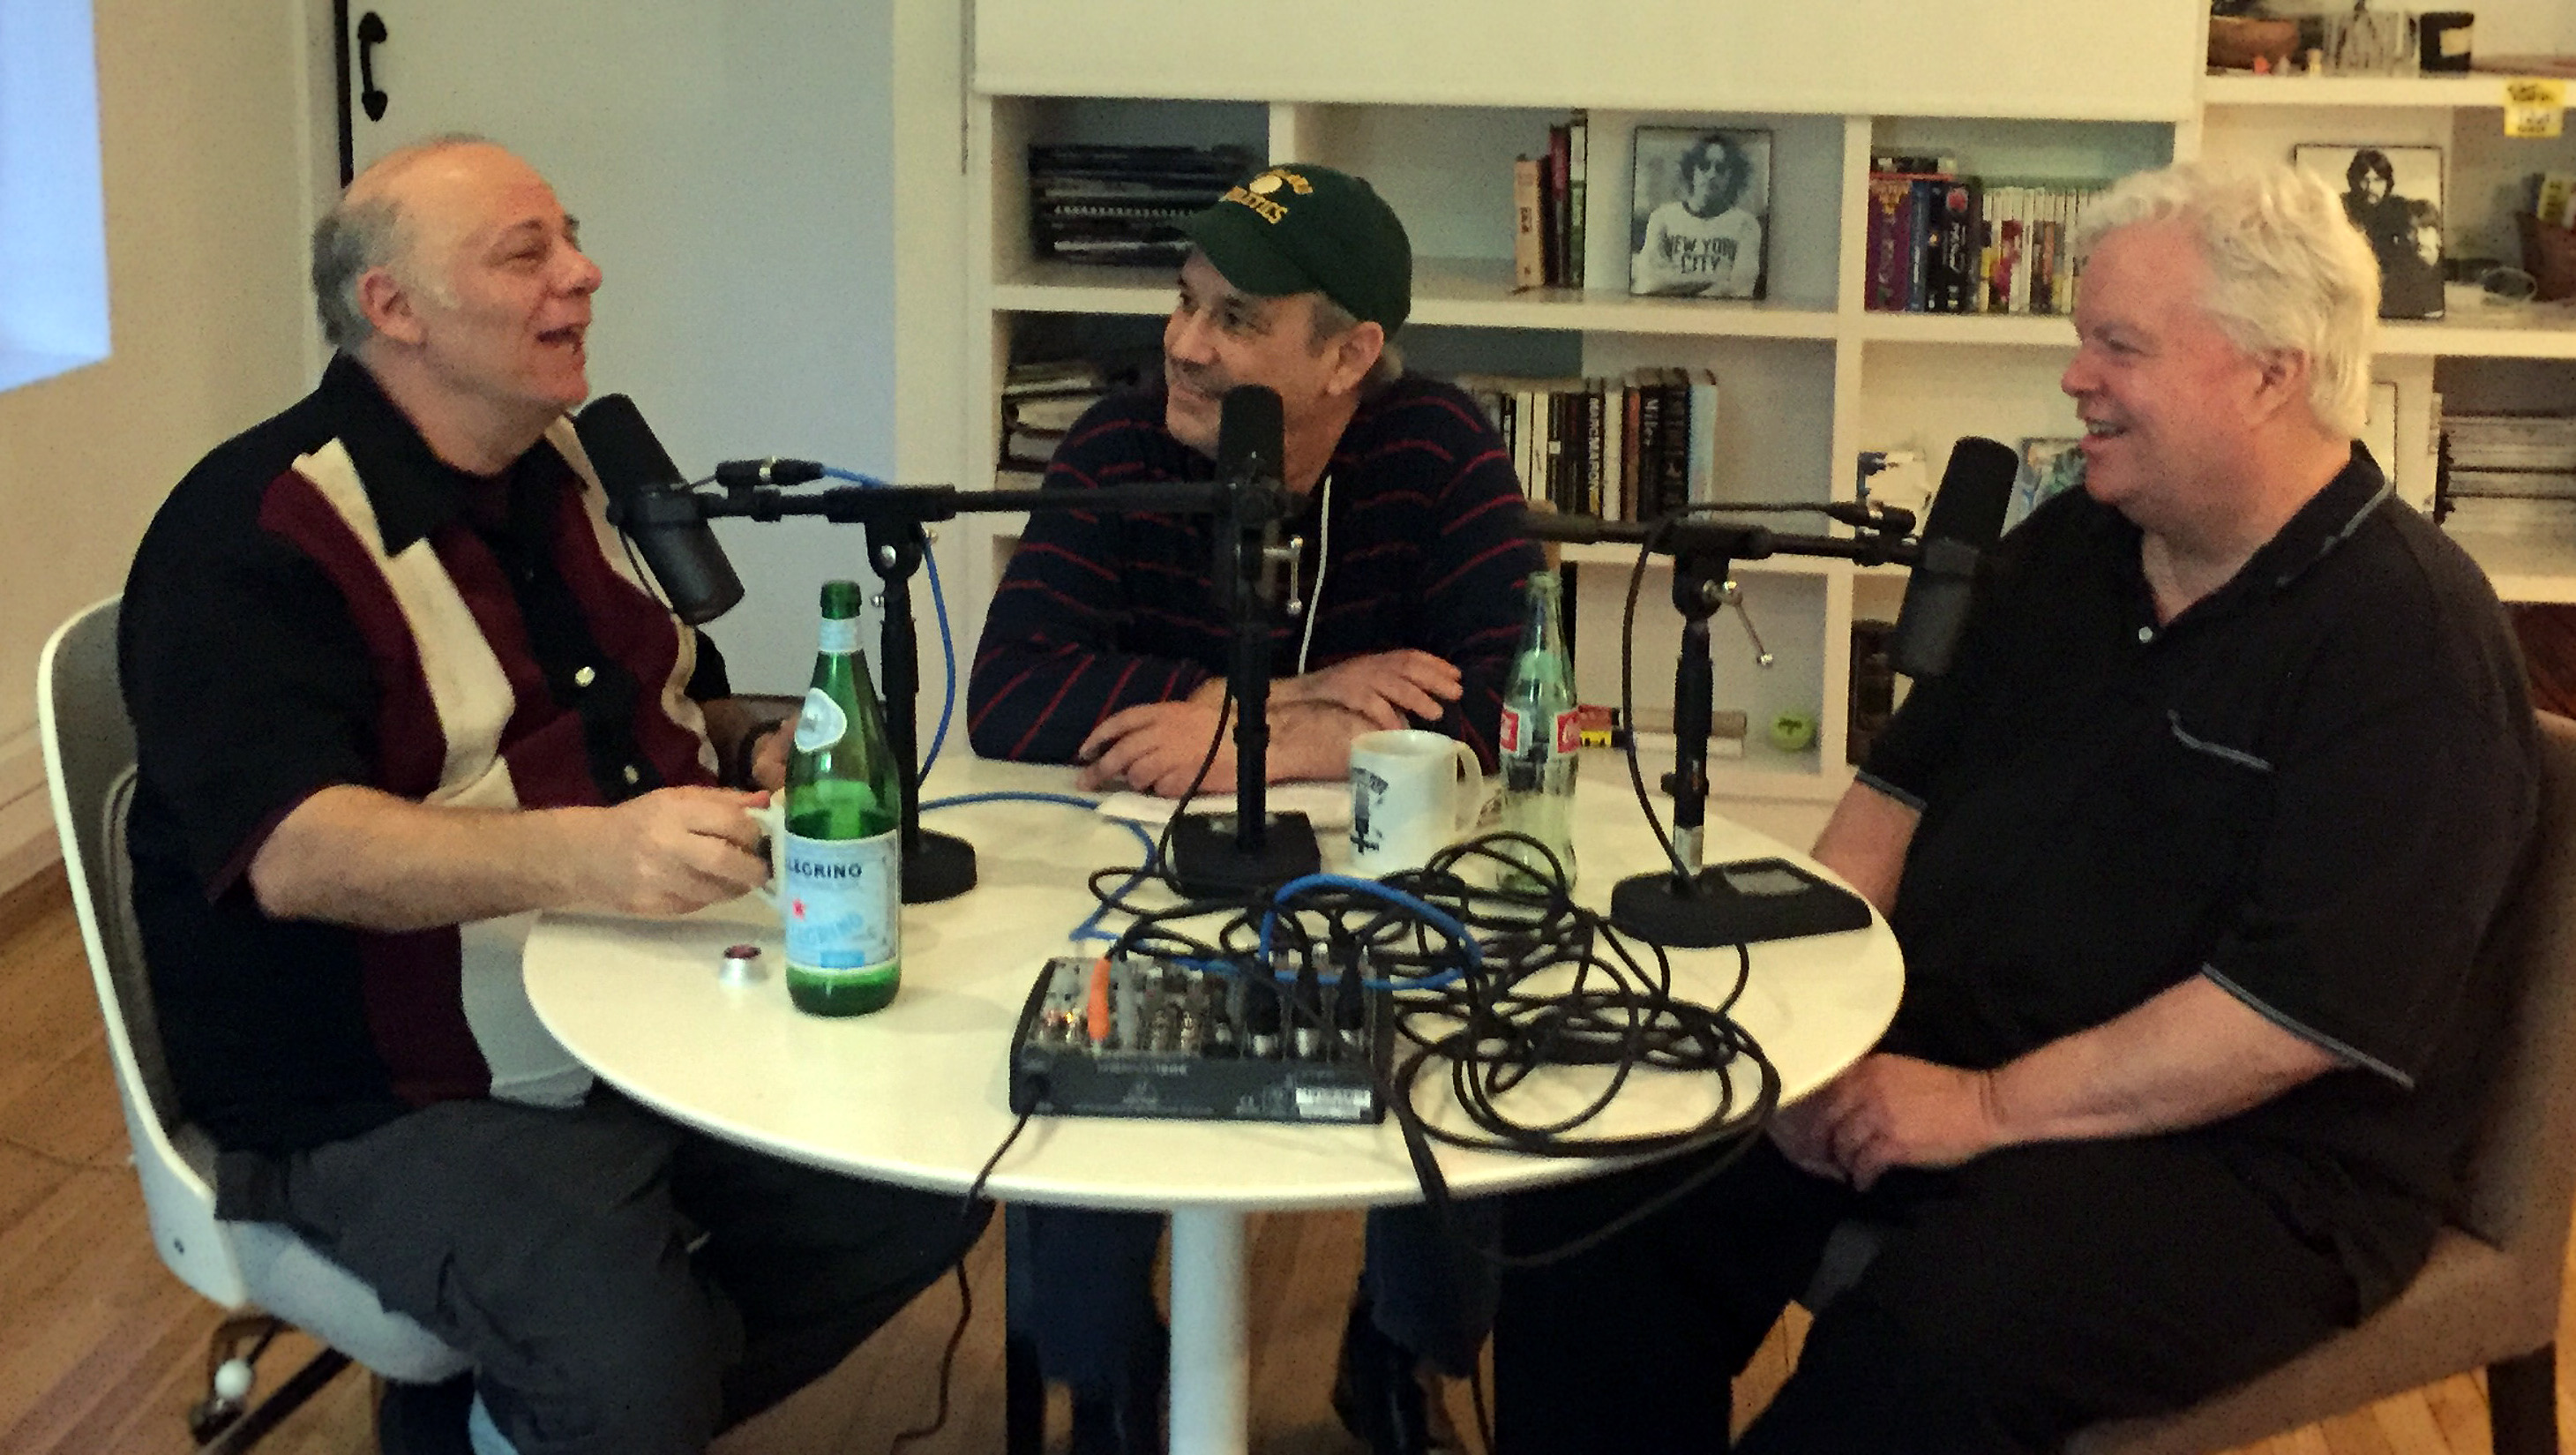 Eddie Pepitone joins Frank Conniff and David in studio.